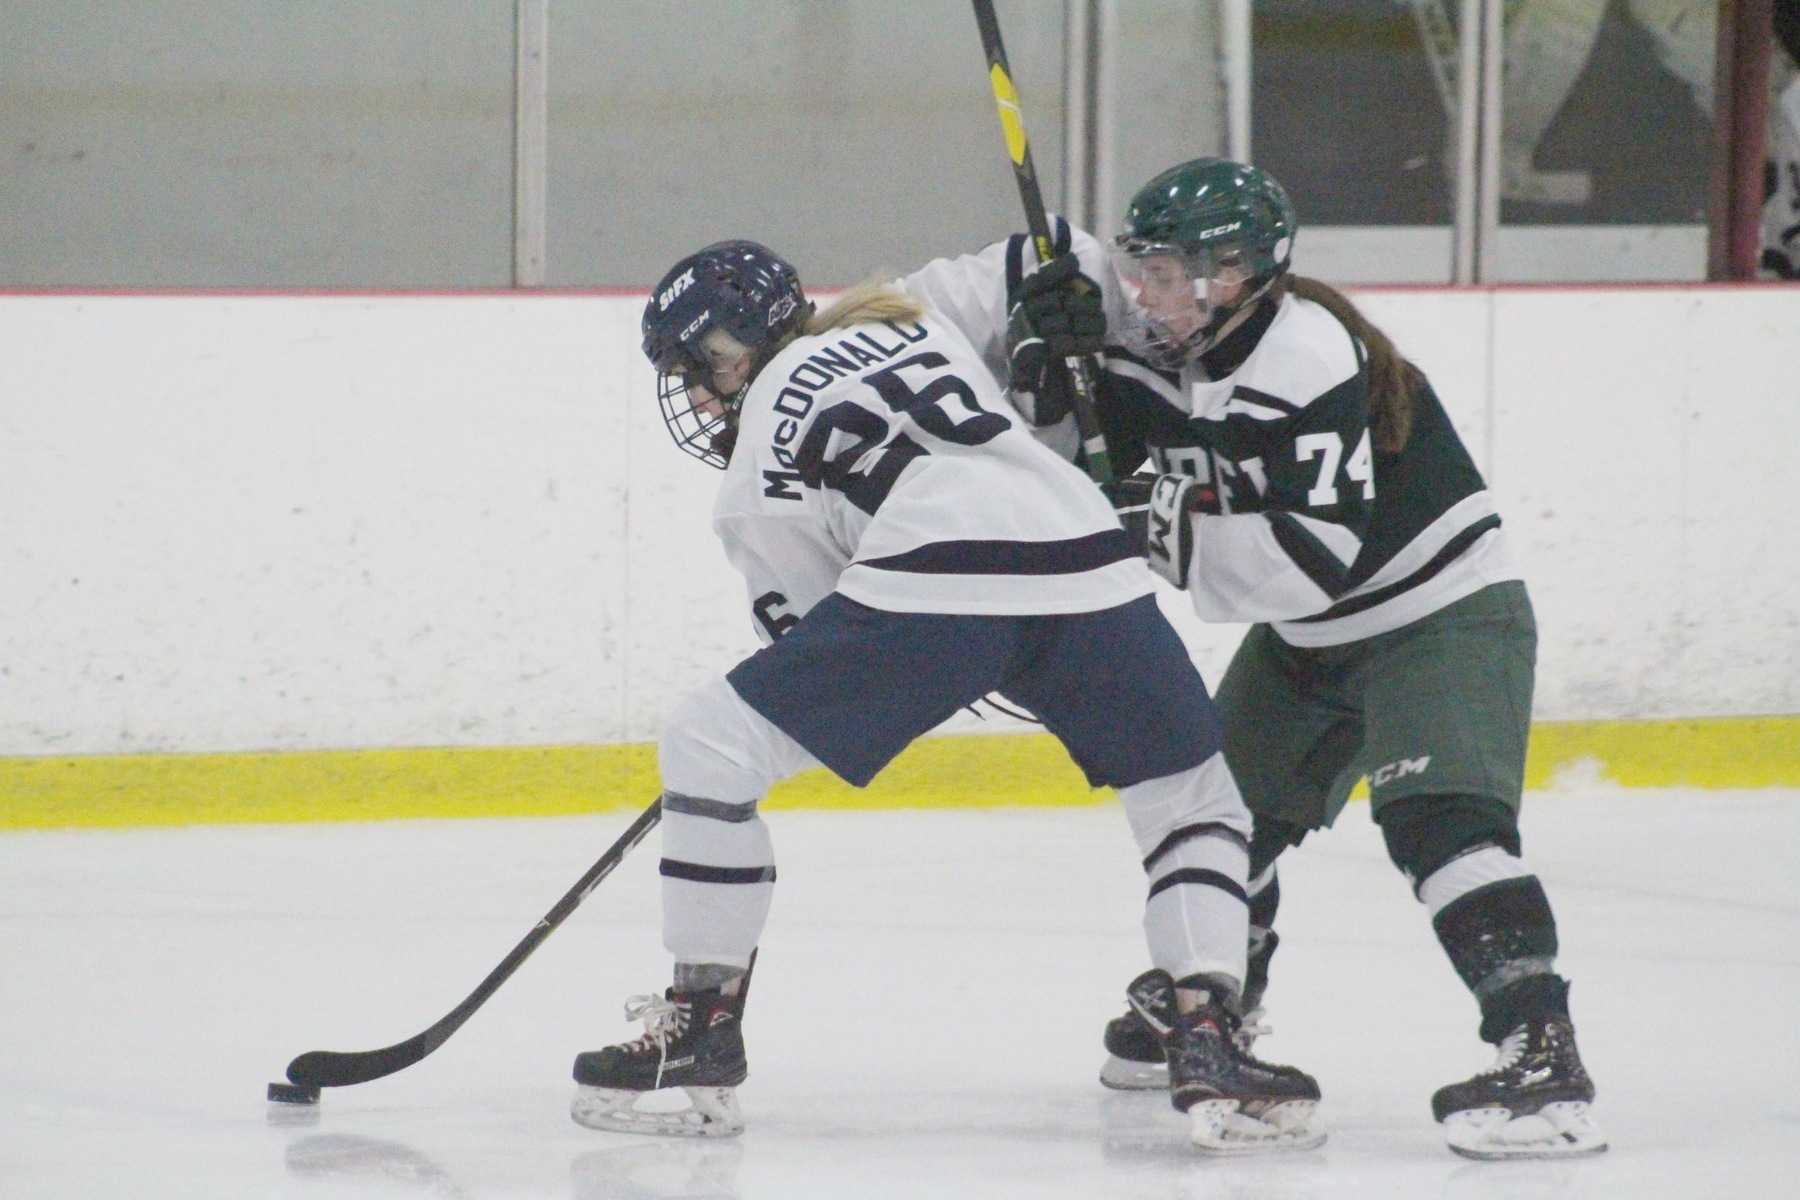 Panthers open playoffs on the road after 2-1 loss to St. FX